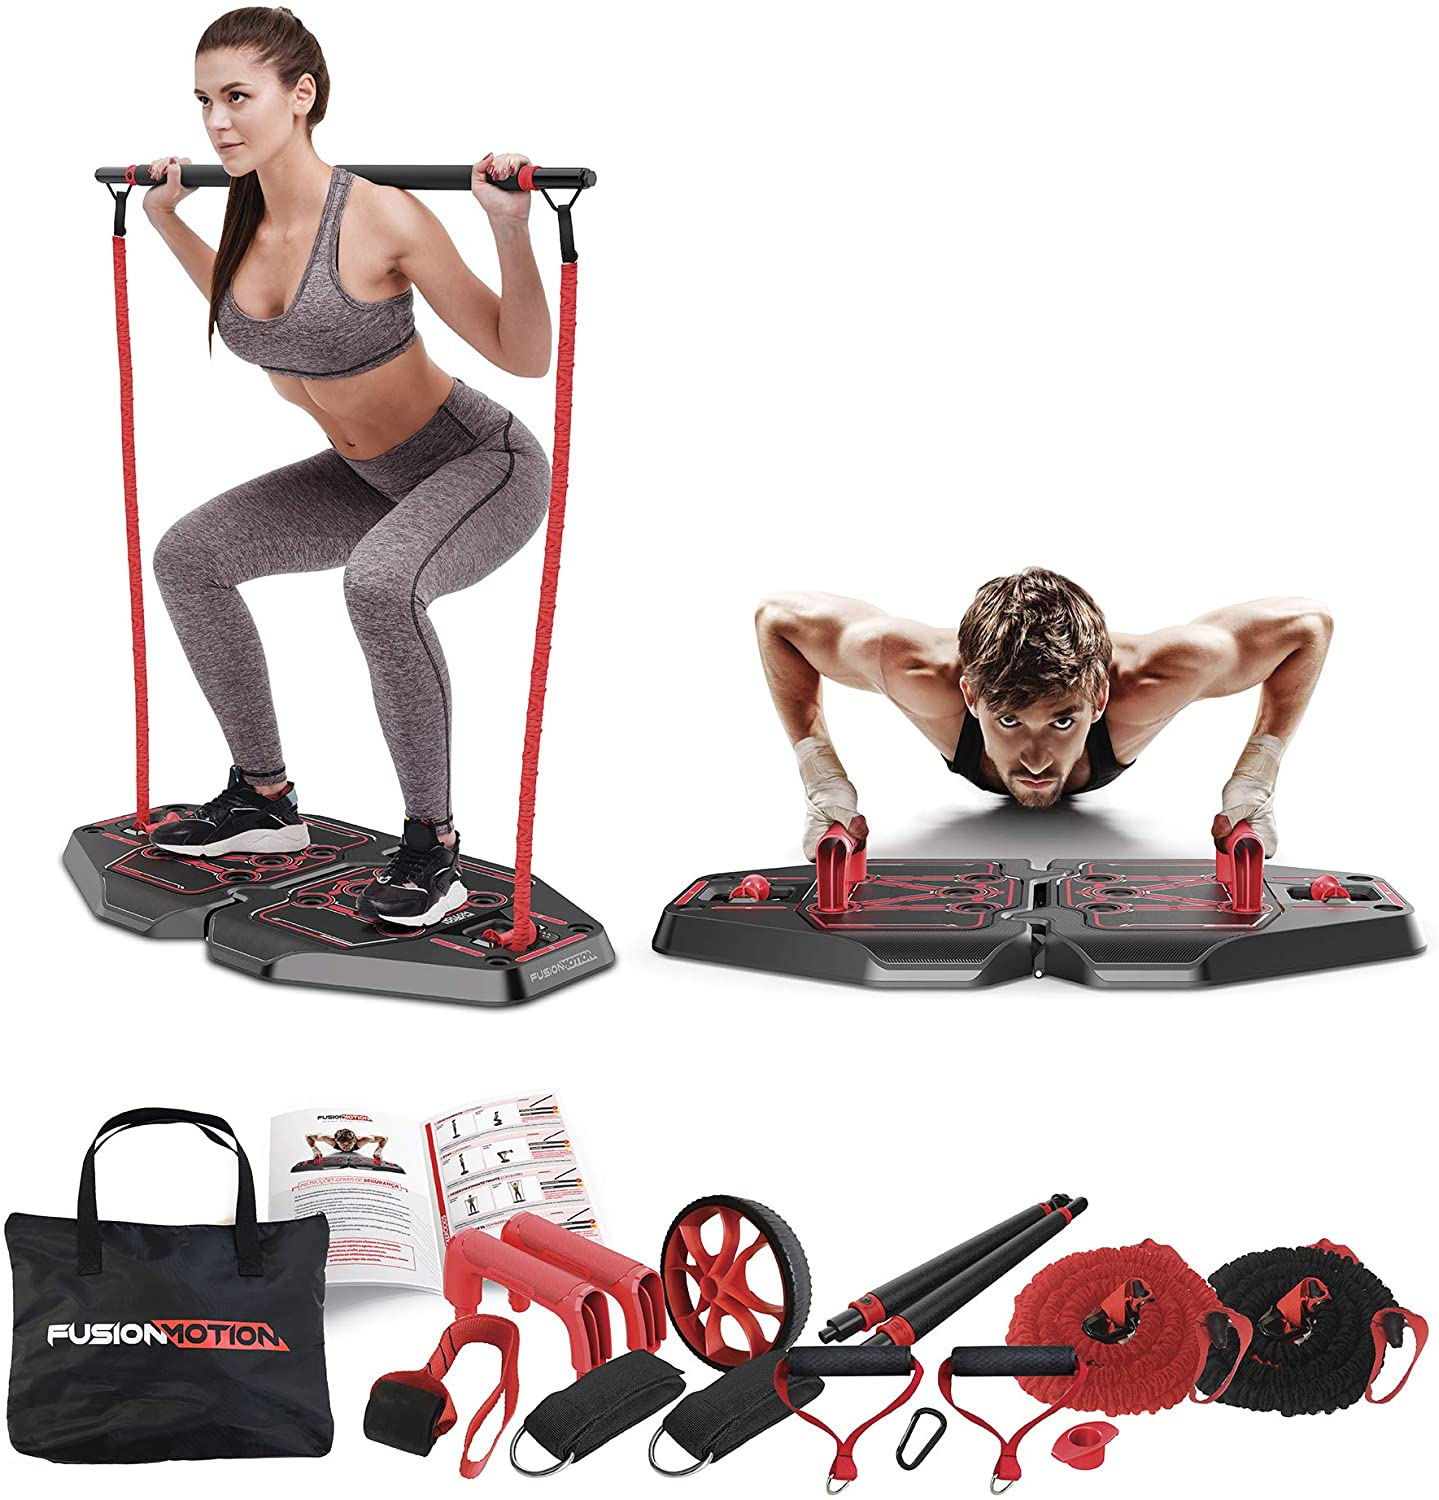 Amazon Com Fusion Motion Portable Gym With 8 Accessories Including Heavy Resistance Bands Tricep Bar Ab Roller Wheel Pulleys And More Full Body Workout Home Exercise Equipment To Build Muscle And